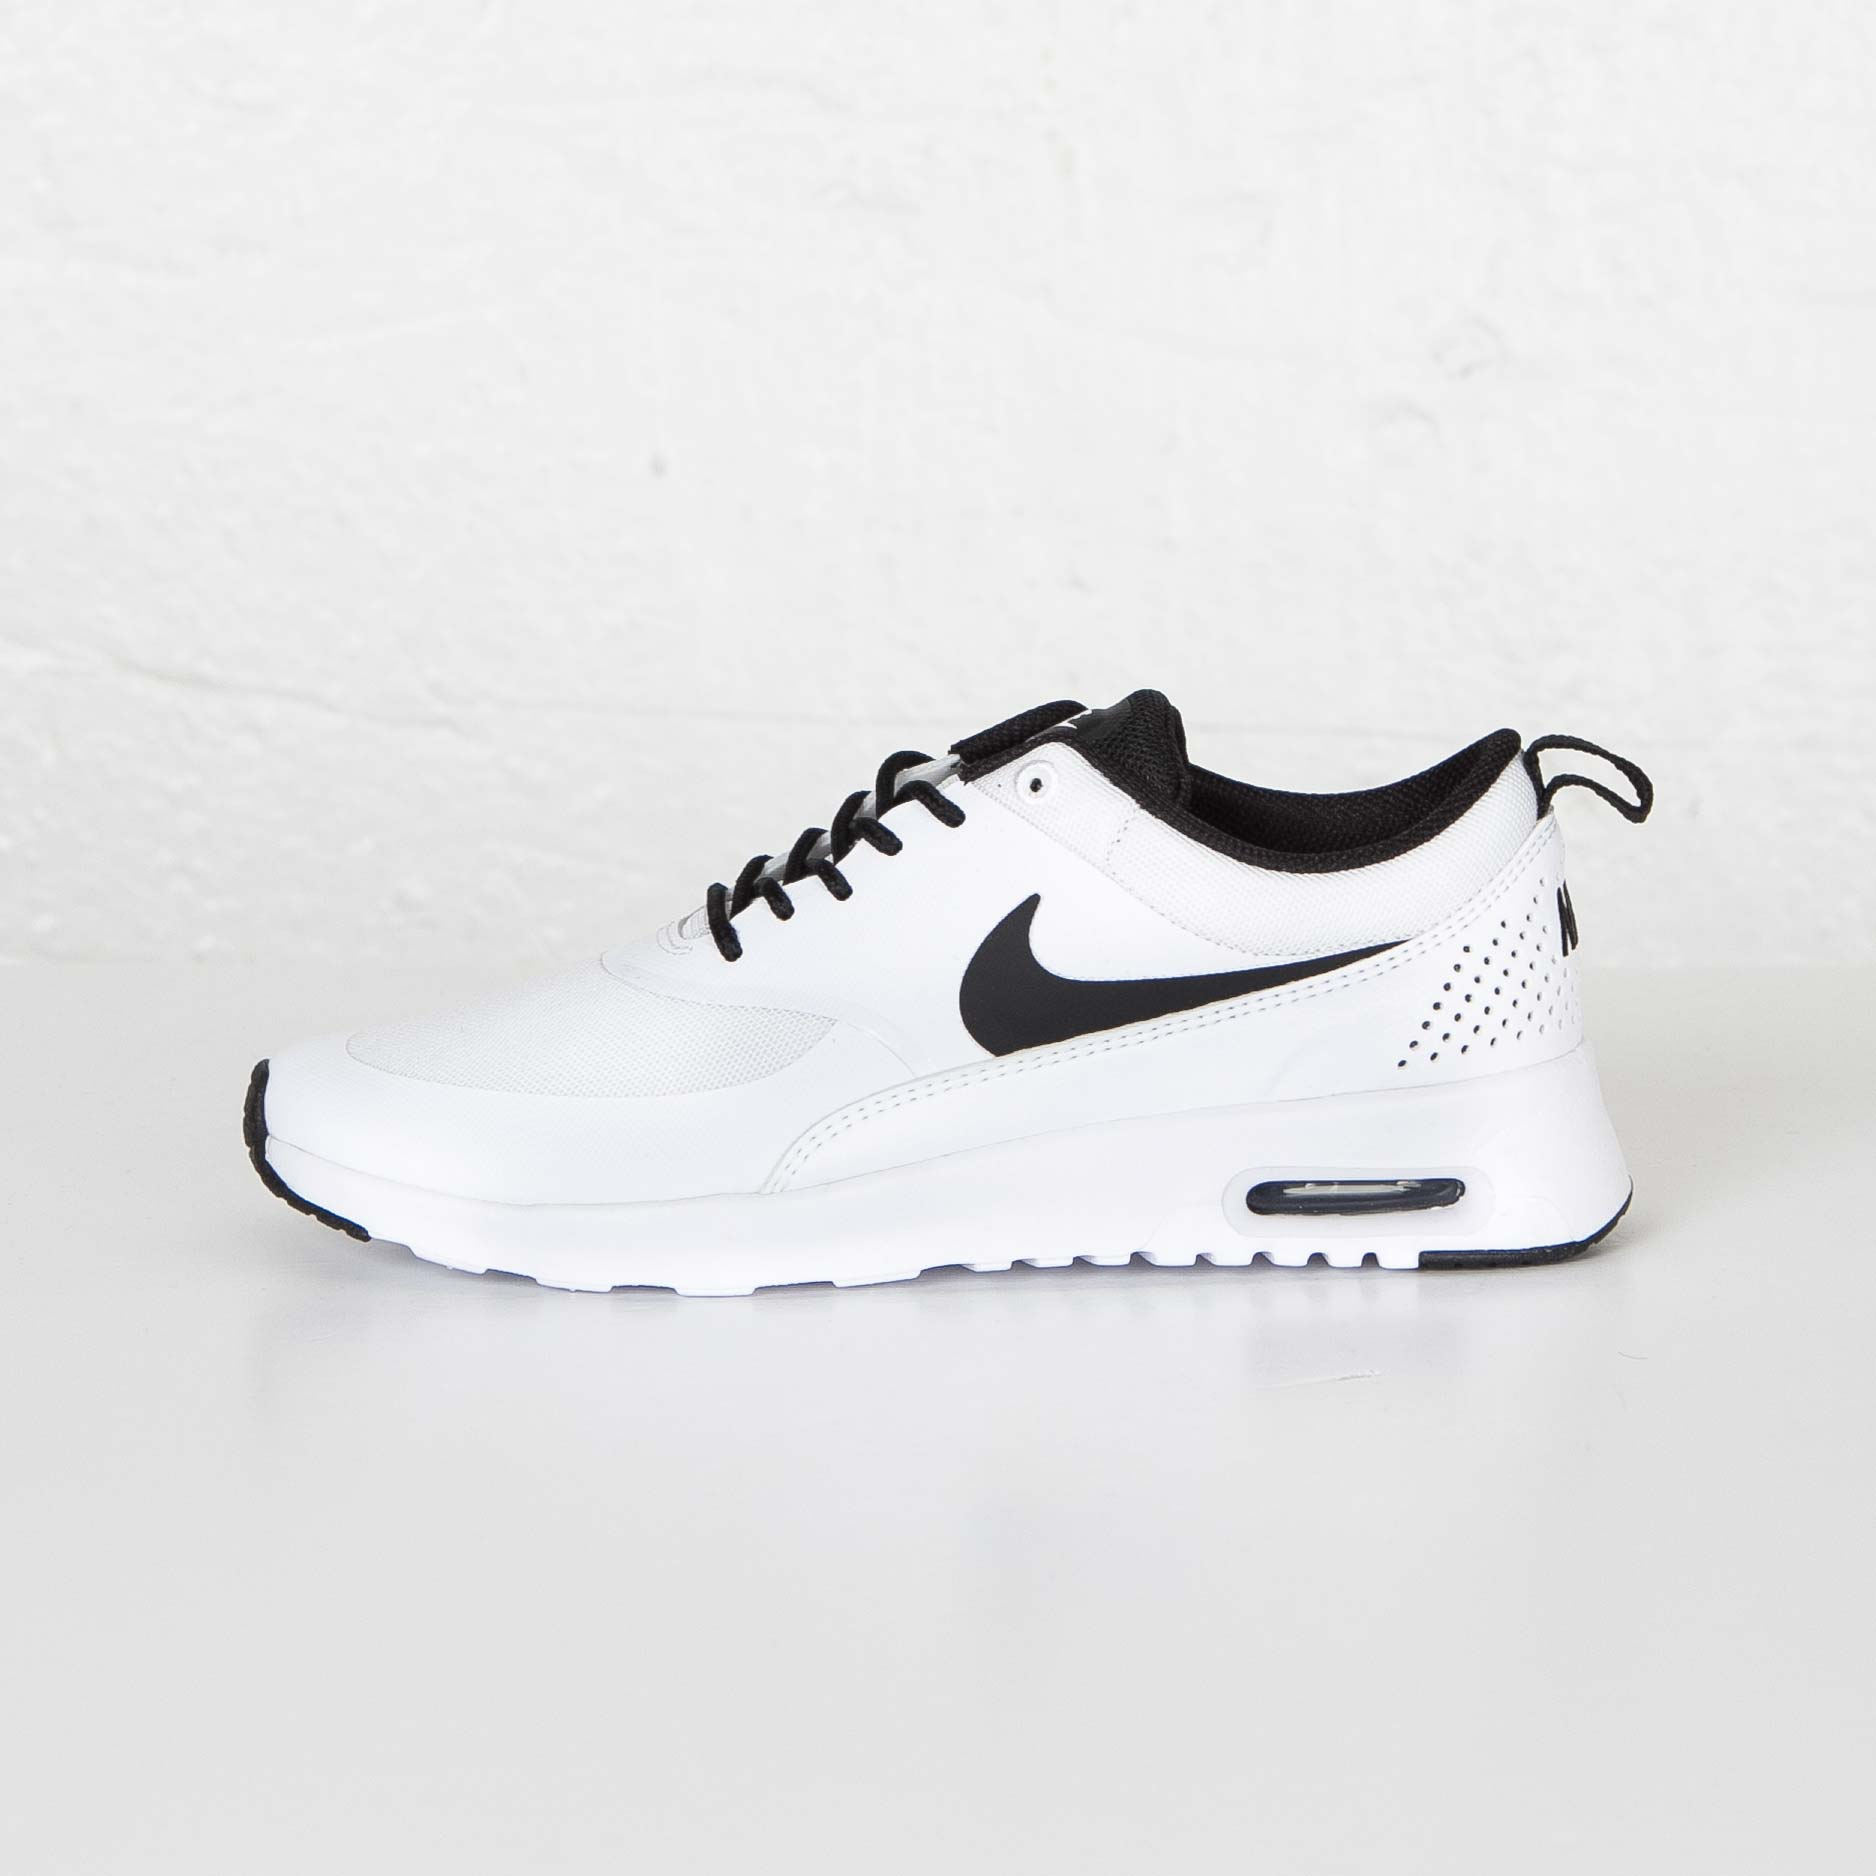 new concept 2c5ba 62ff4 Nike Wmns Air Max Thea - 599409-102 - Sneakersnstuff   sneakers    streetwear online since 1999